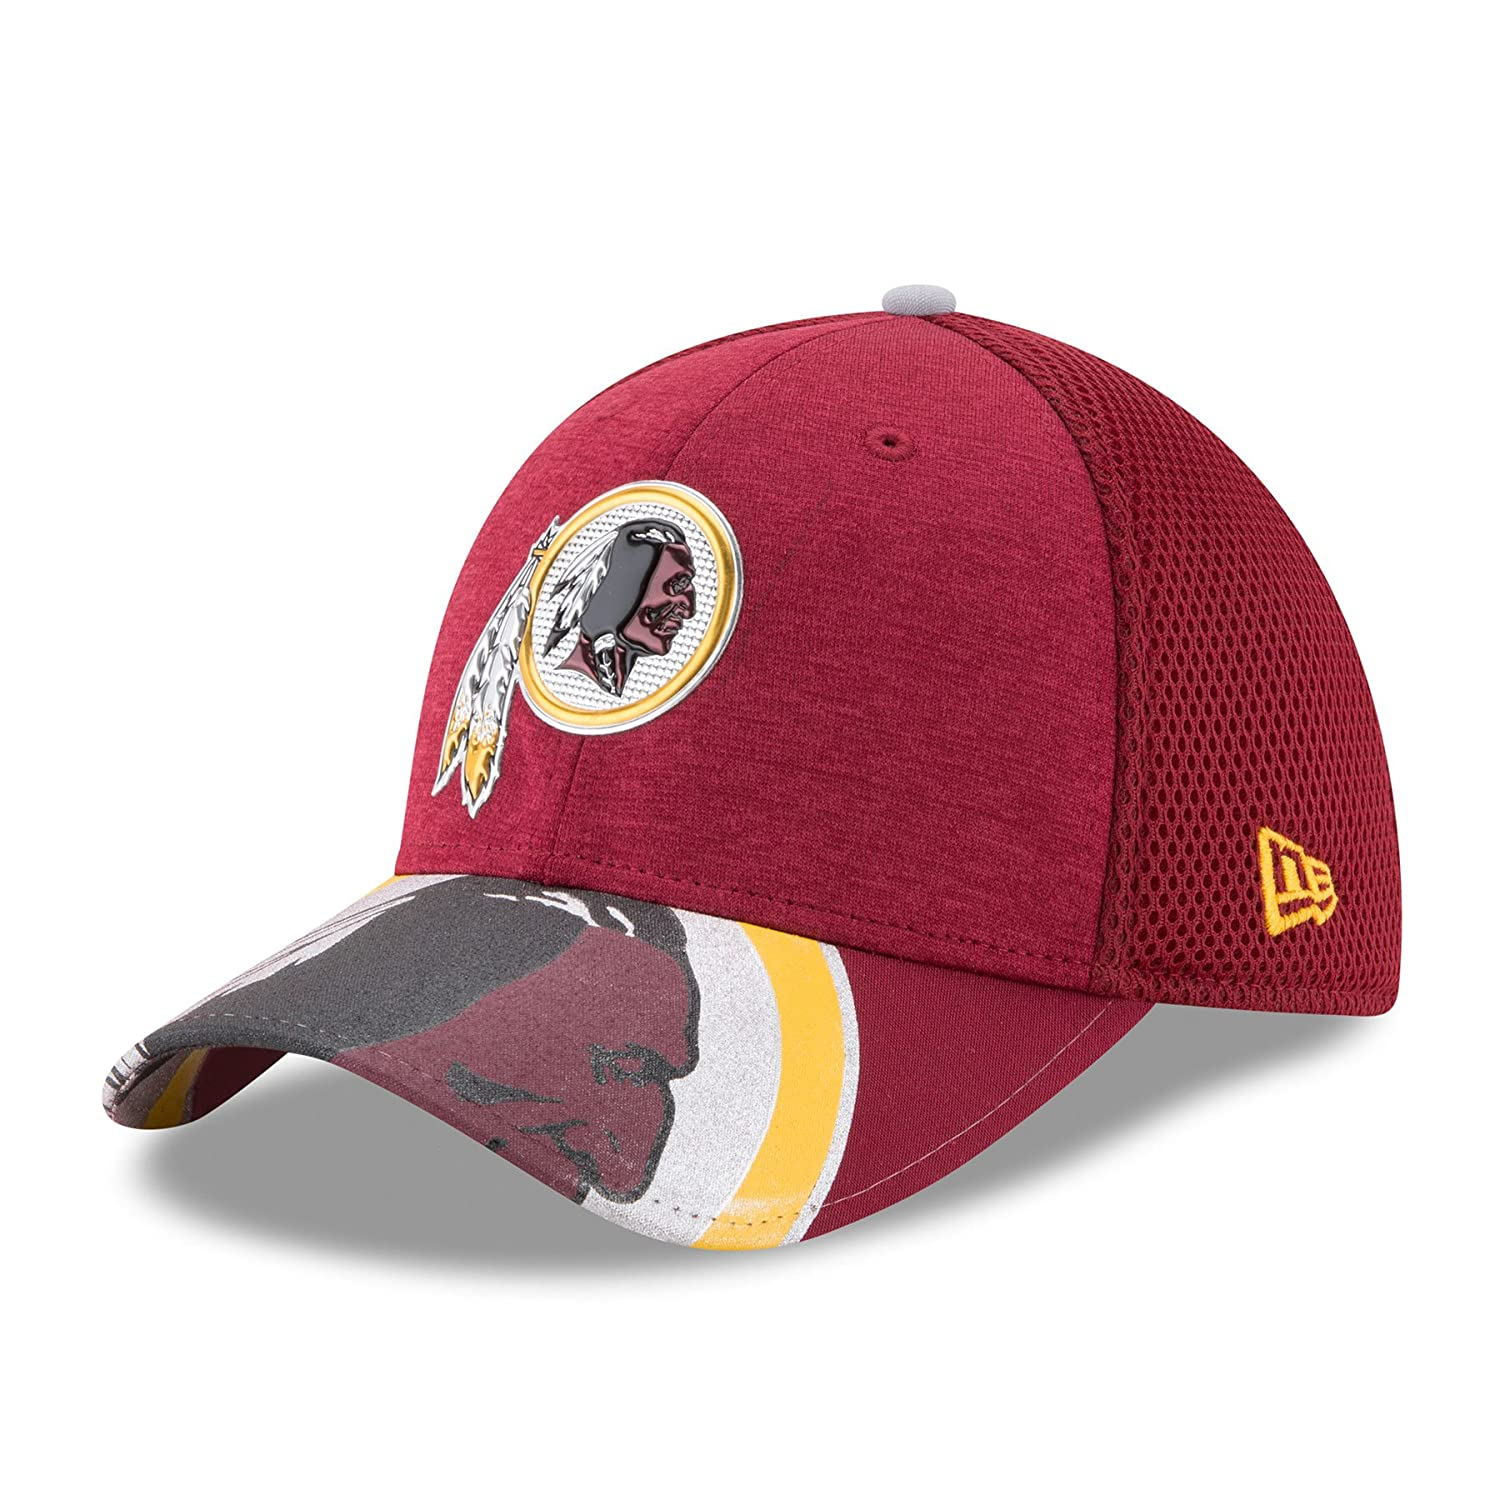 New Era NFL WASHINGTON REDSKINS Authentic 39THIRTY Draft 2017 Stretch Fit Cap